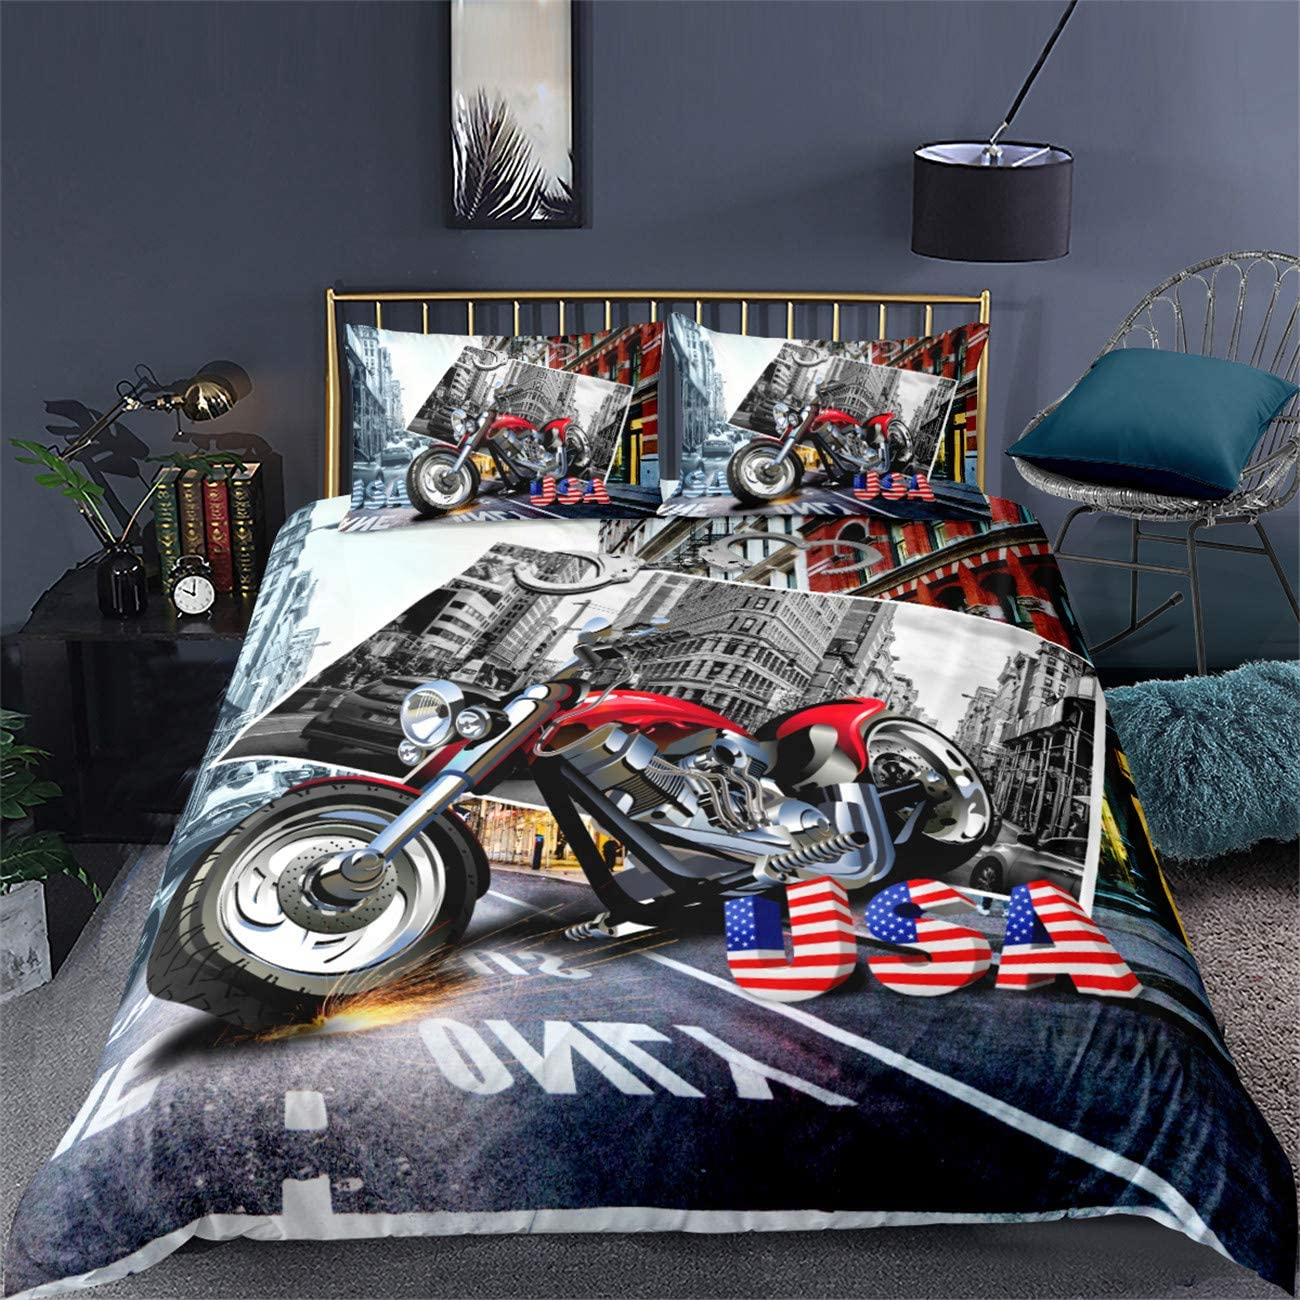 AMTAN 3D Duvet Cover Dirt Bike Motocross Racing Bed Set 3pcs 100/% Superfine/ Fiber Bedding Set Great Gift for Kids Boys Teens 1 Duvet Cover 2 Pillowcase Twin Full Queen King Size